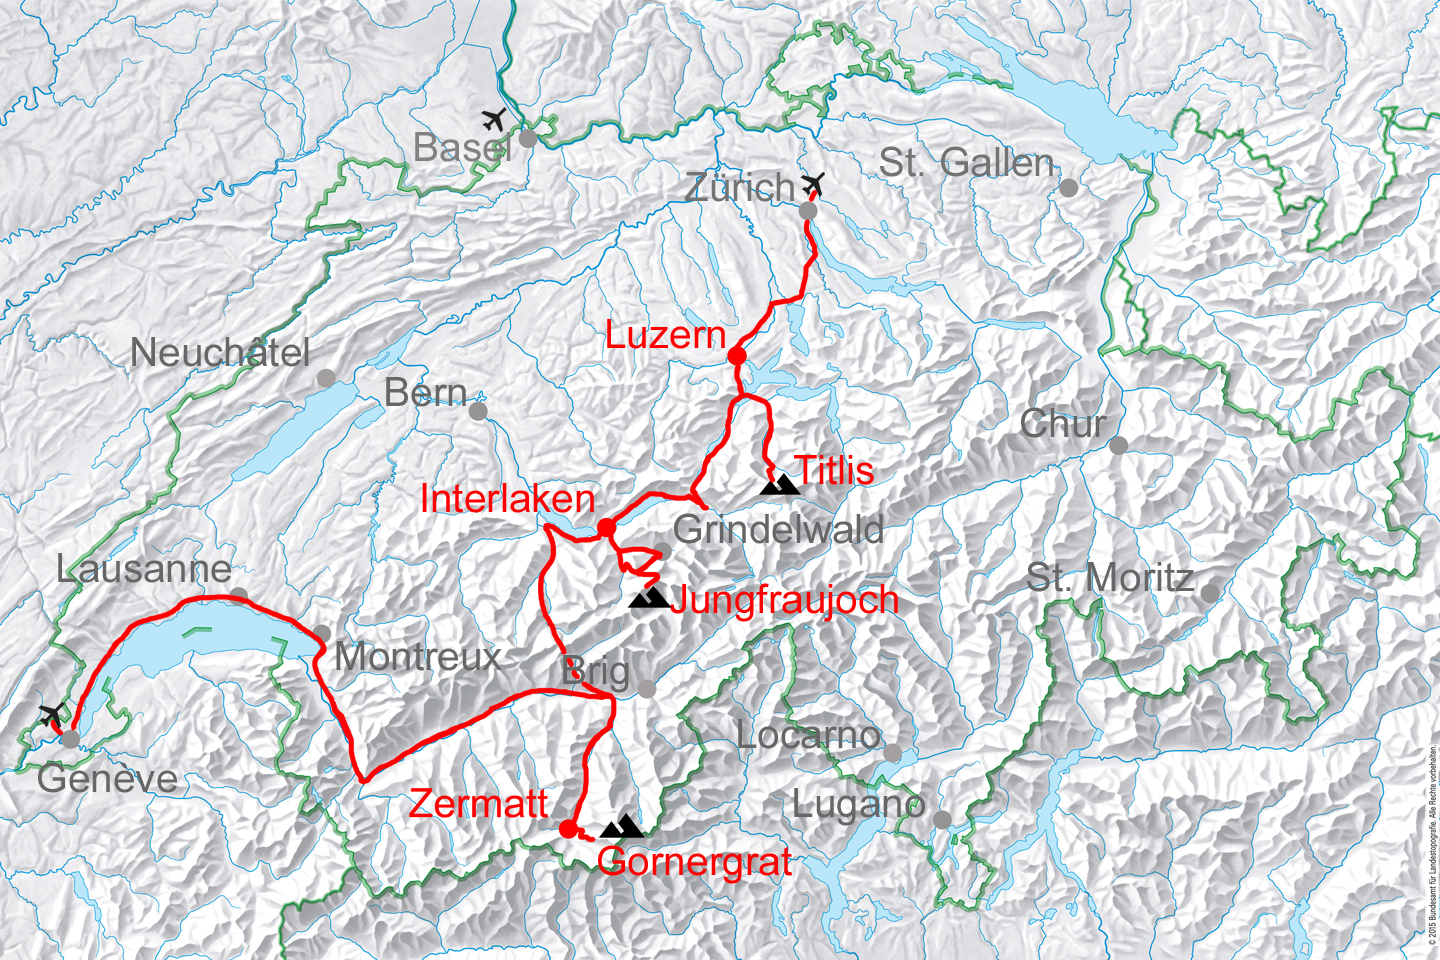 Highlights of Switzerland route. The tour can start at any Swiss airport.